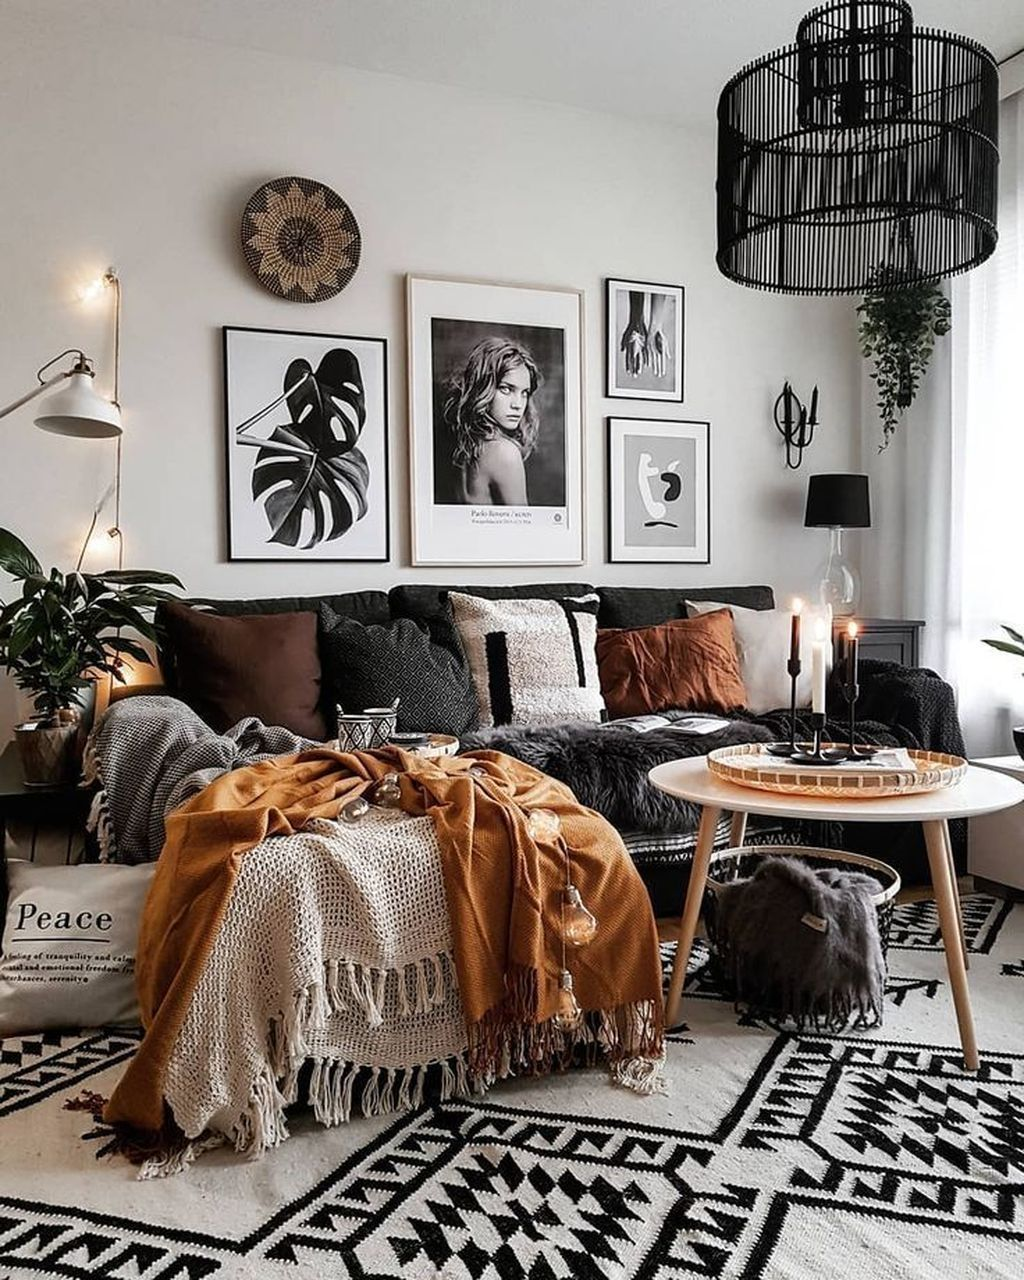 Best Cool 20 Stylish Bohemian Style Living Room Decoration 640 x 480